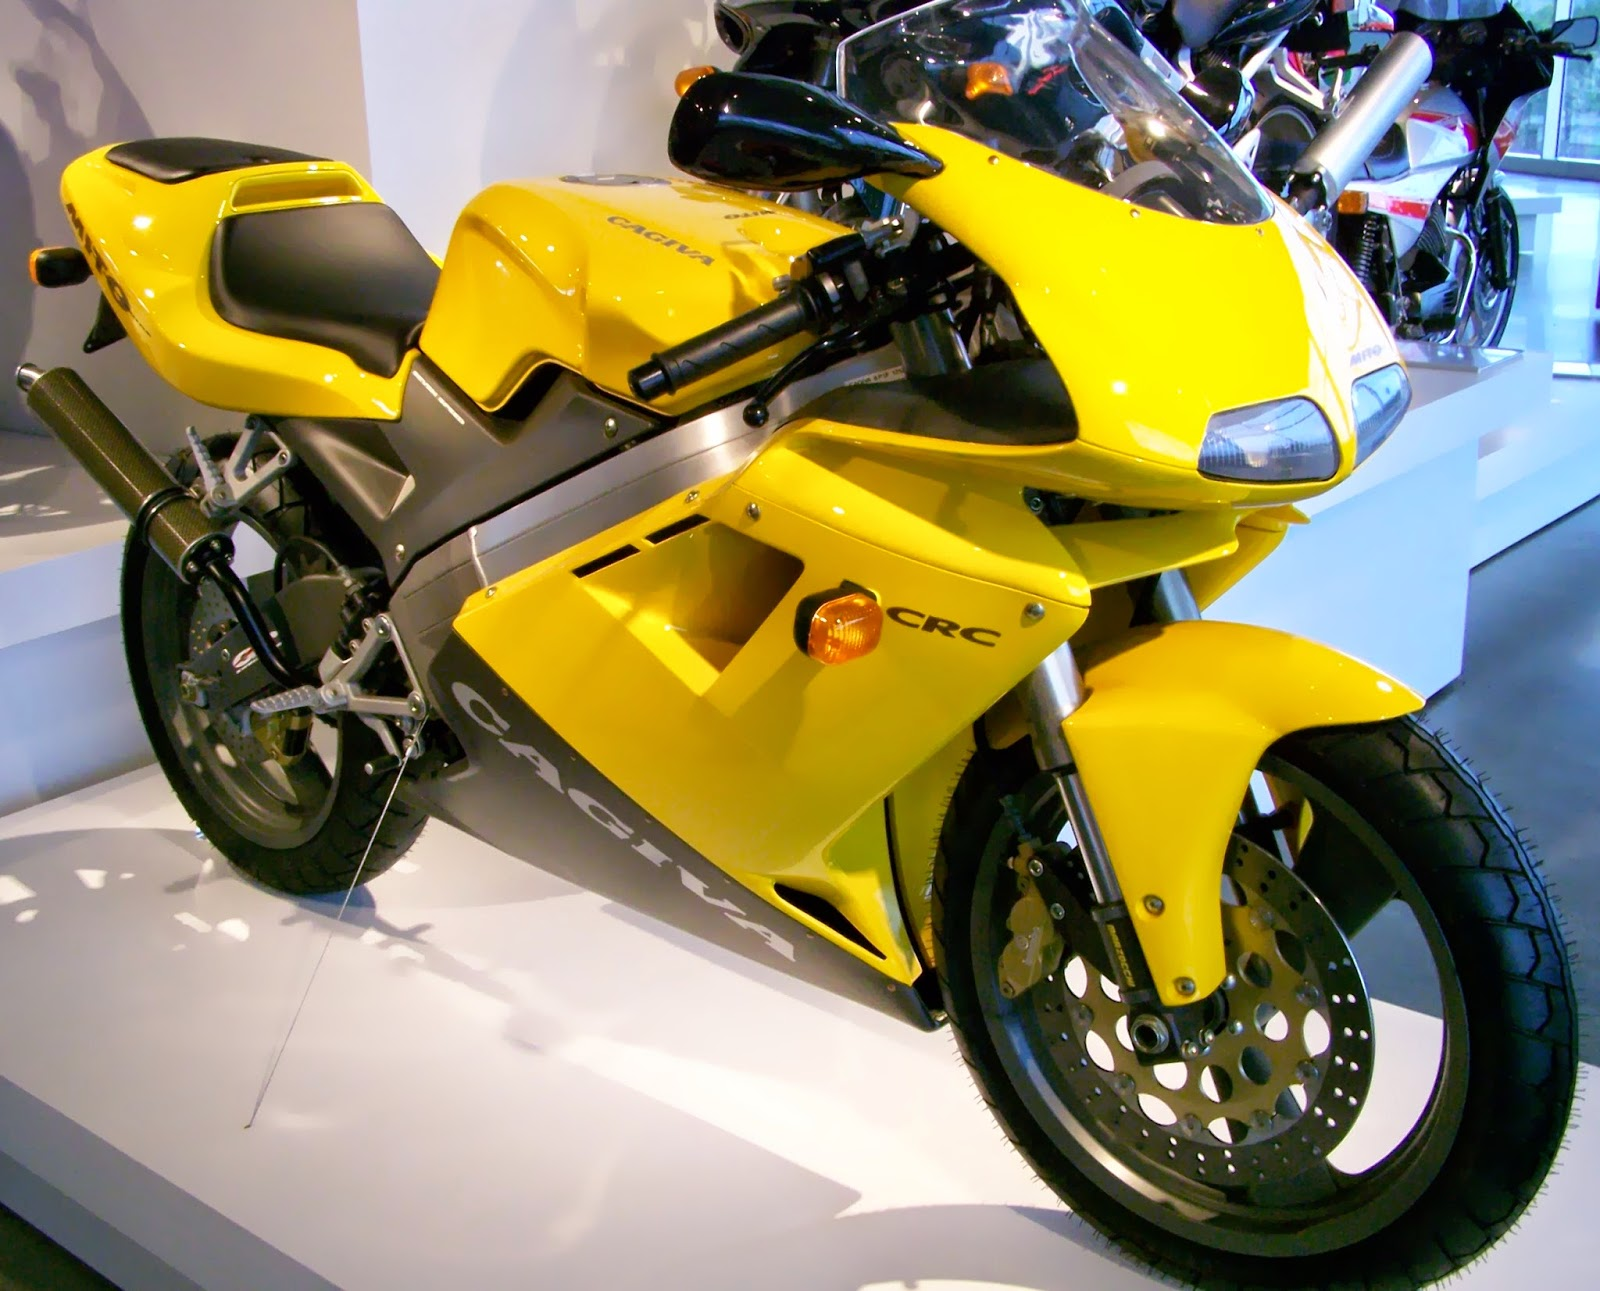 cagiva mito 125 cagiva mito 125 evo 1 history technical details specs. Black Bedroom Furniture Sets. Home Design Ideas